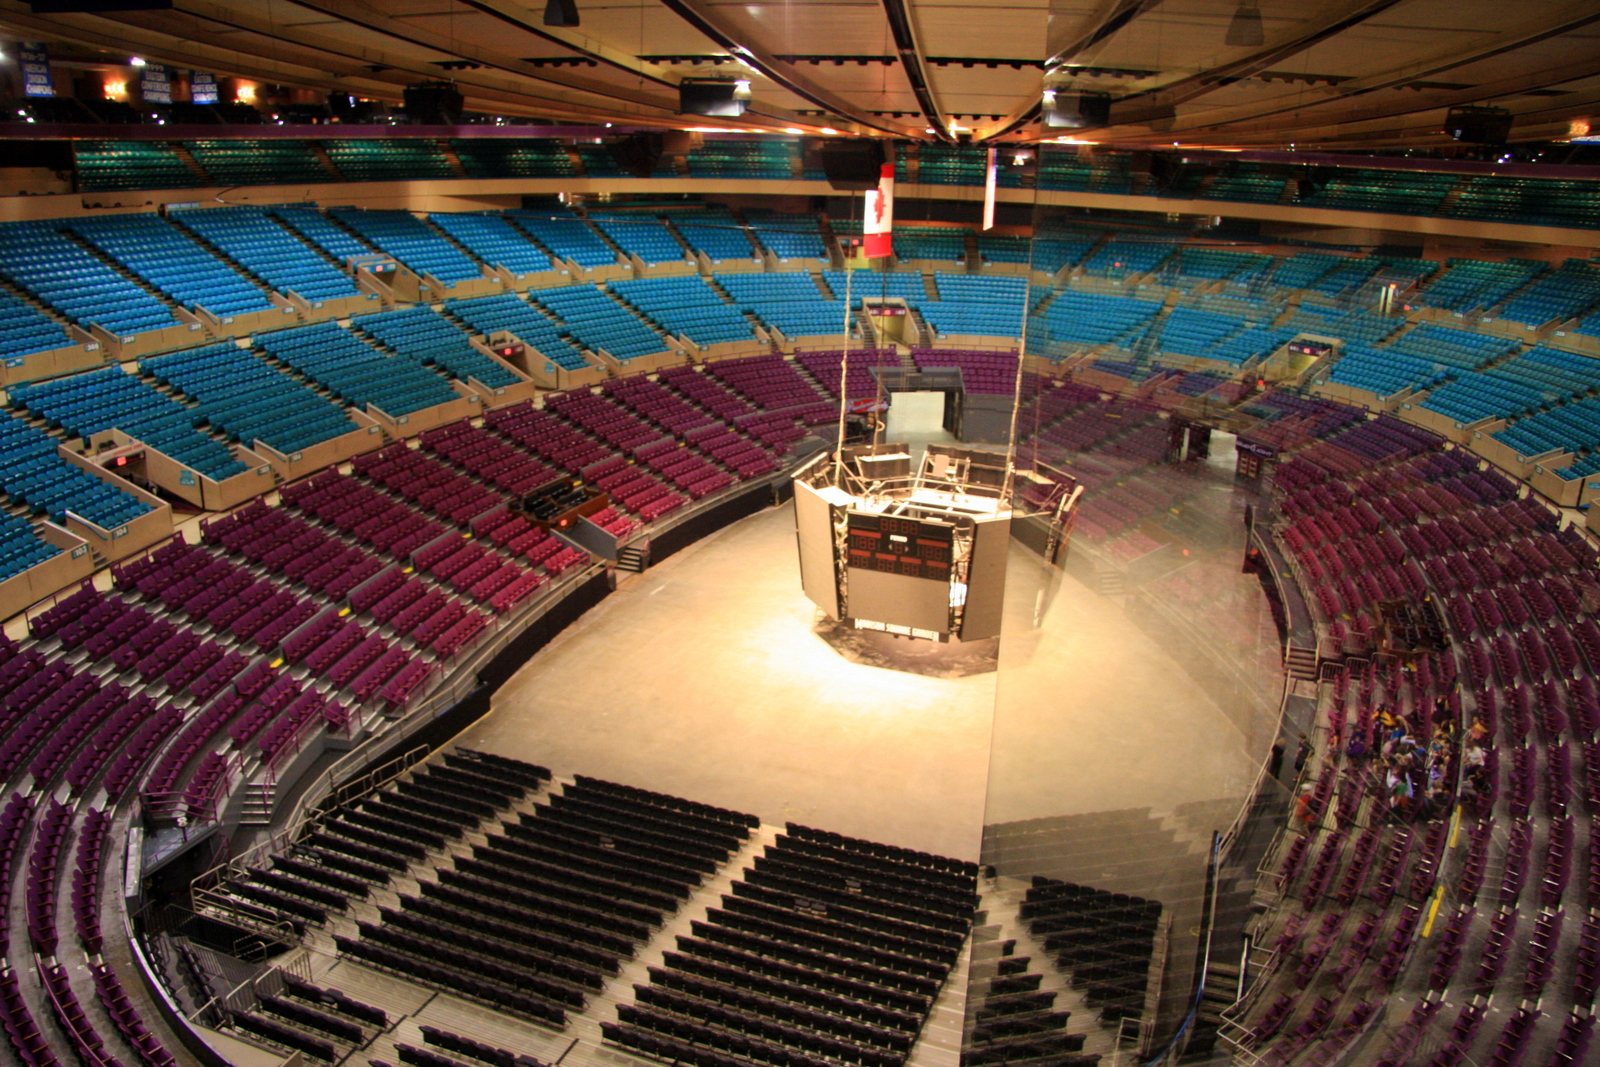 Madison square garden project wip maps maps mapping - How old is madison square garden ...